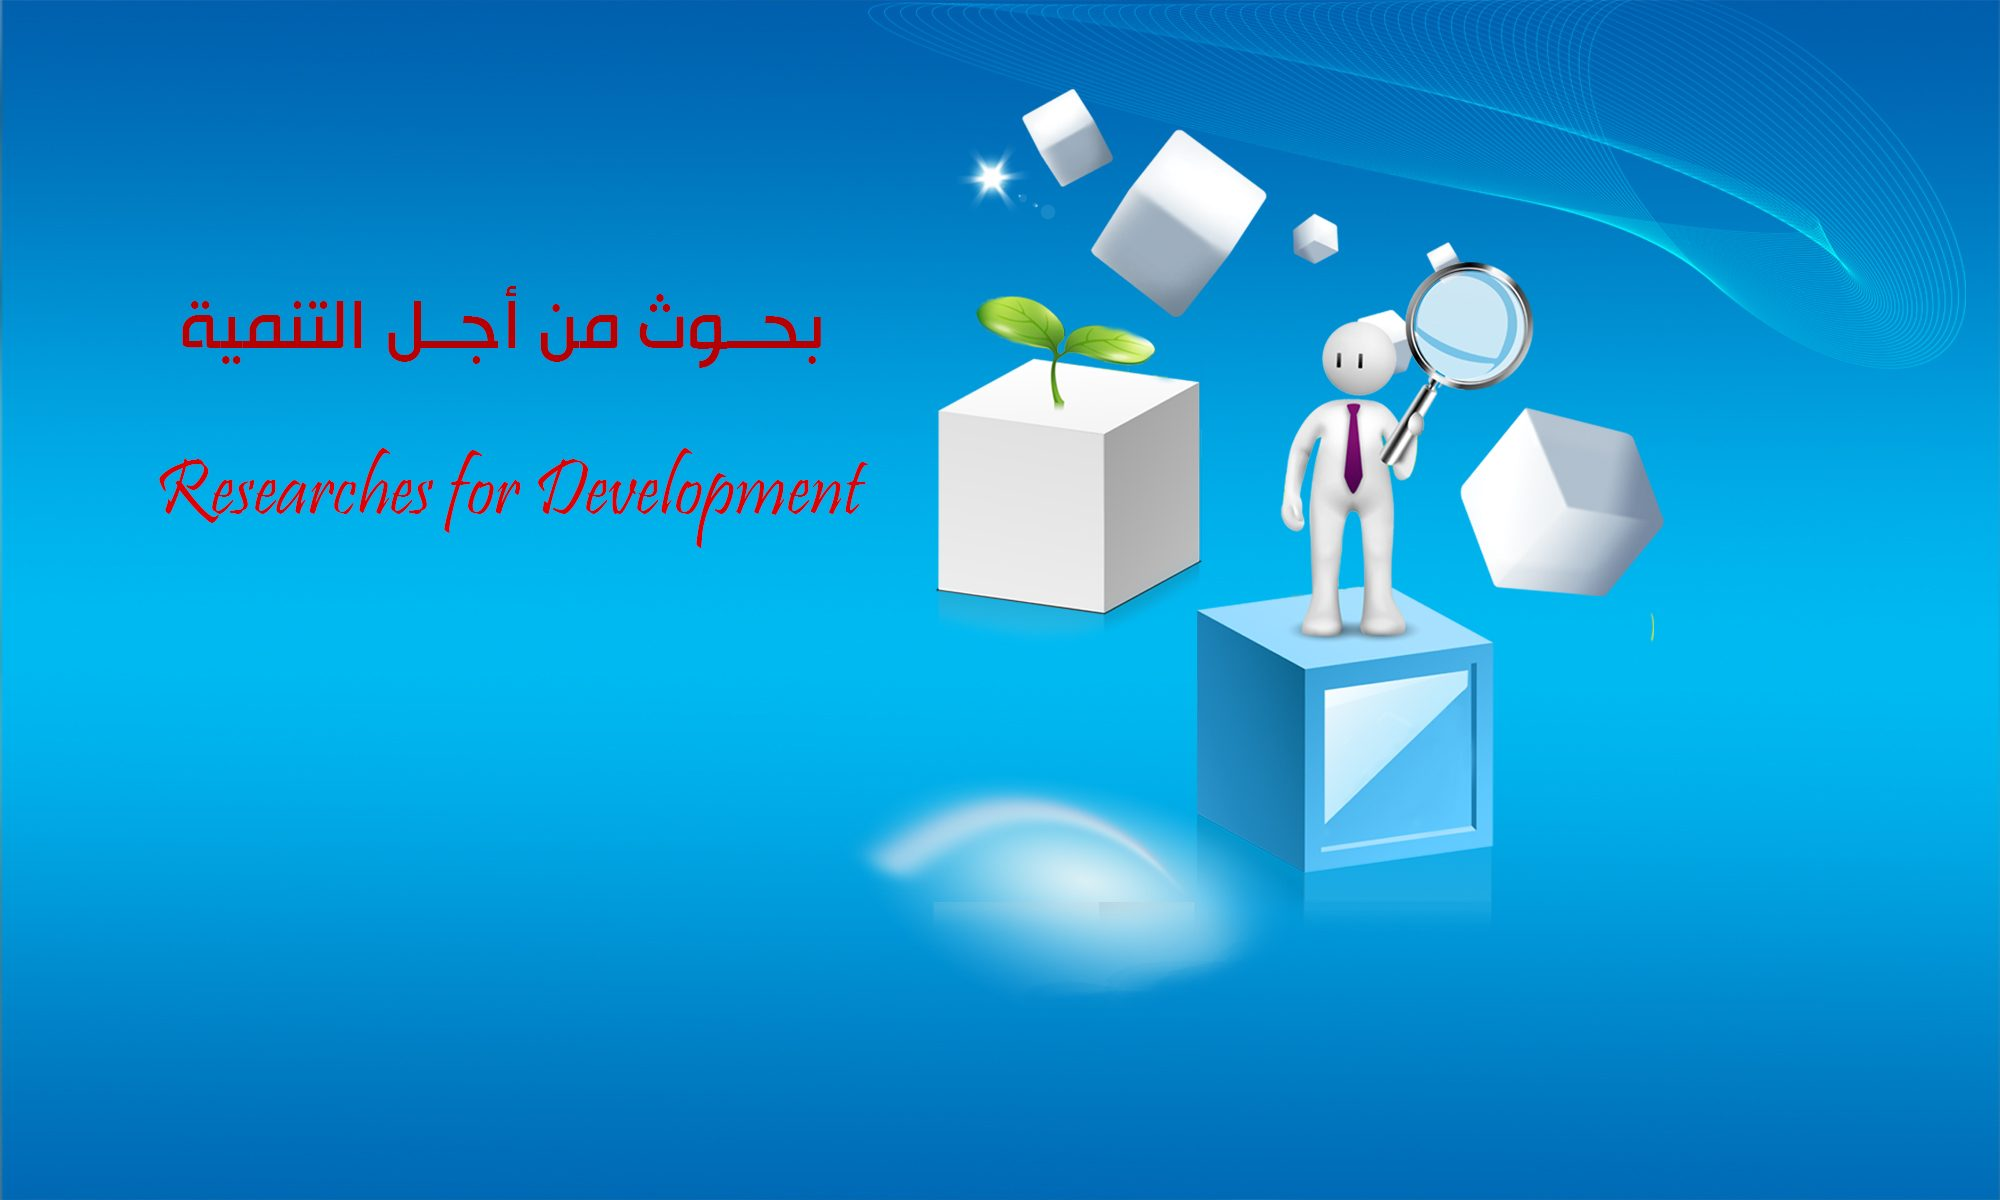 Economic and Social Development Researches Center